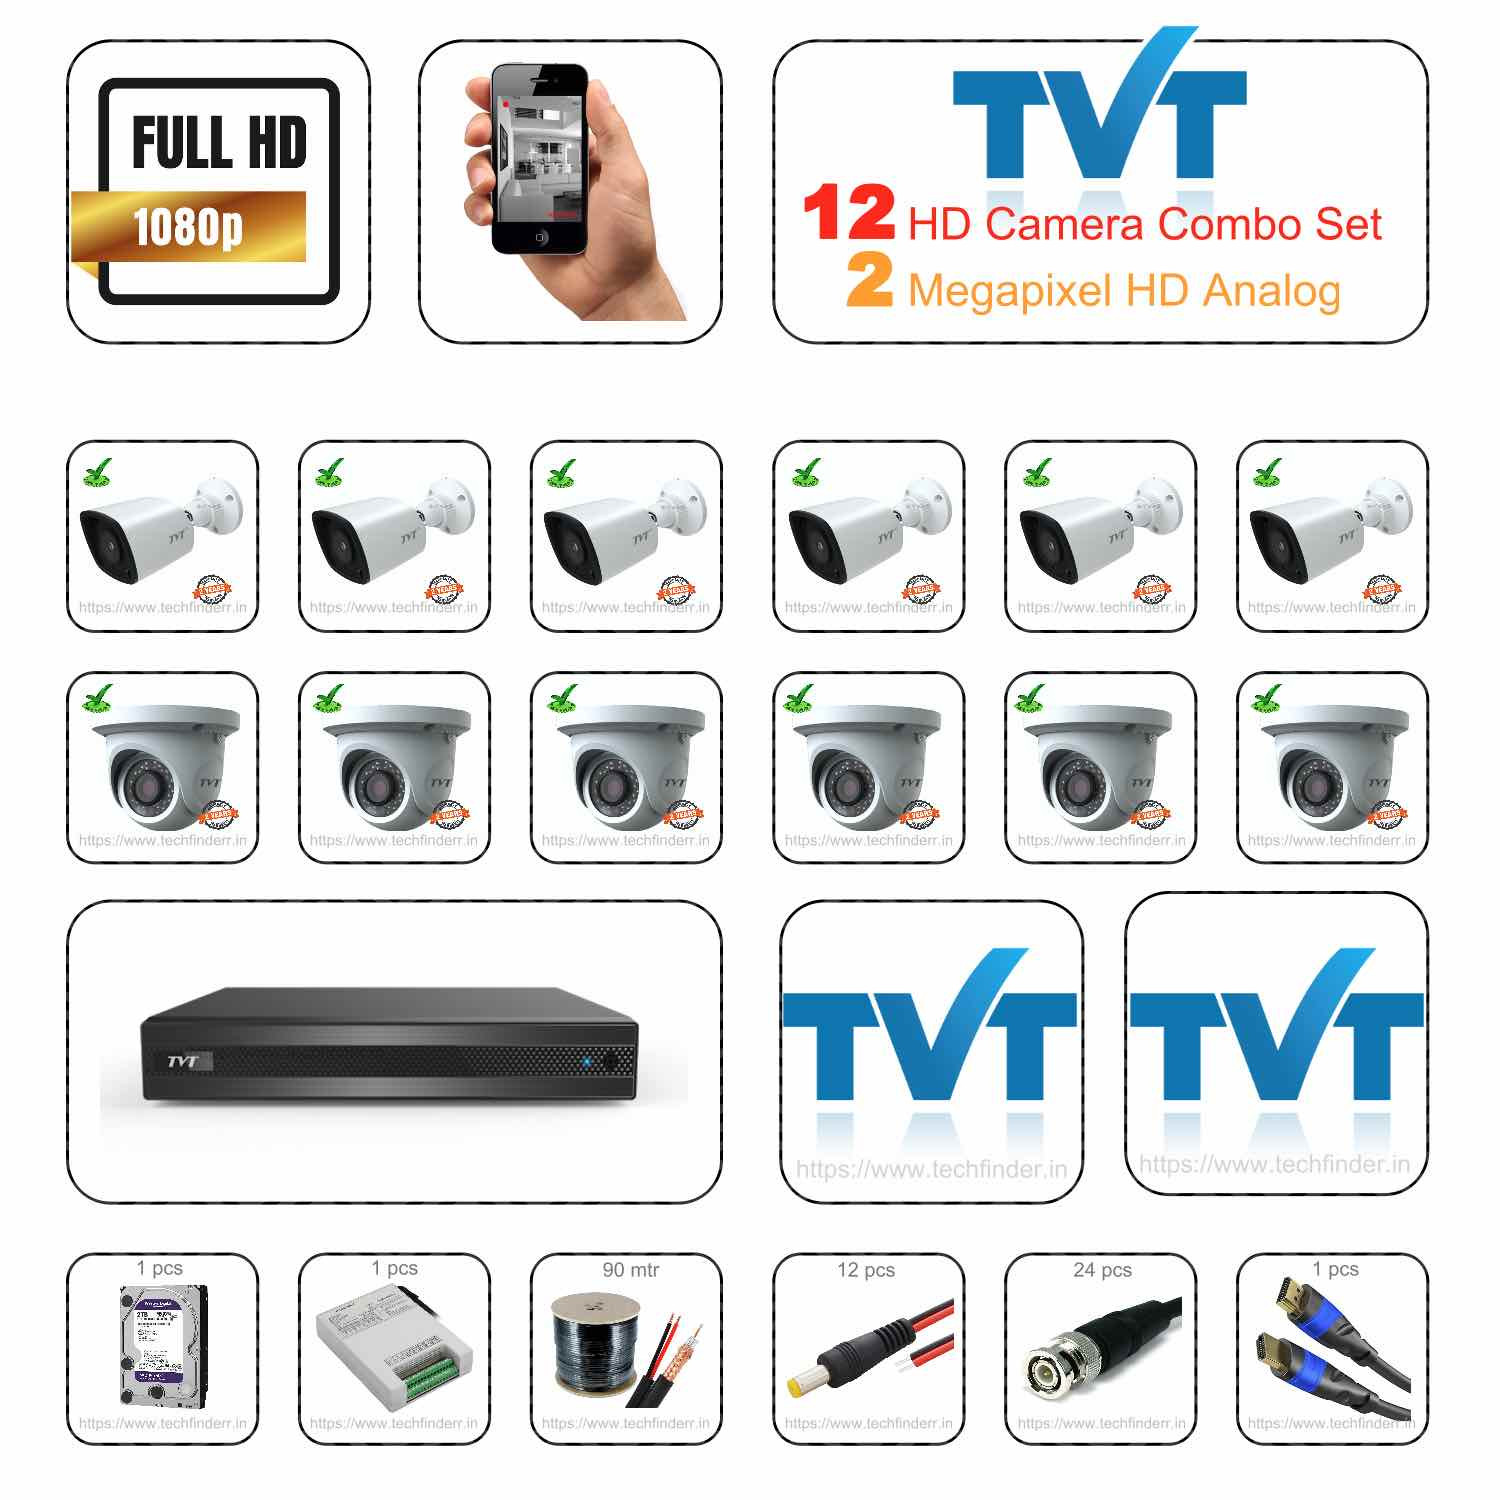 TVT HD 12 Camera Set Combo Kit